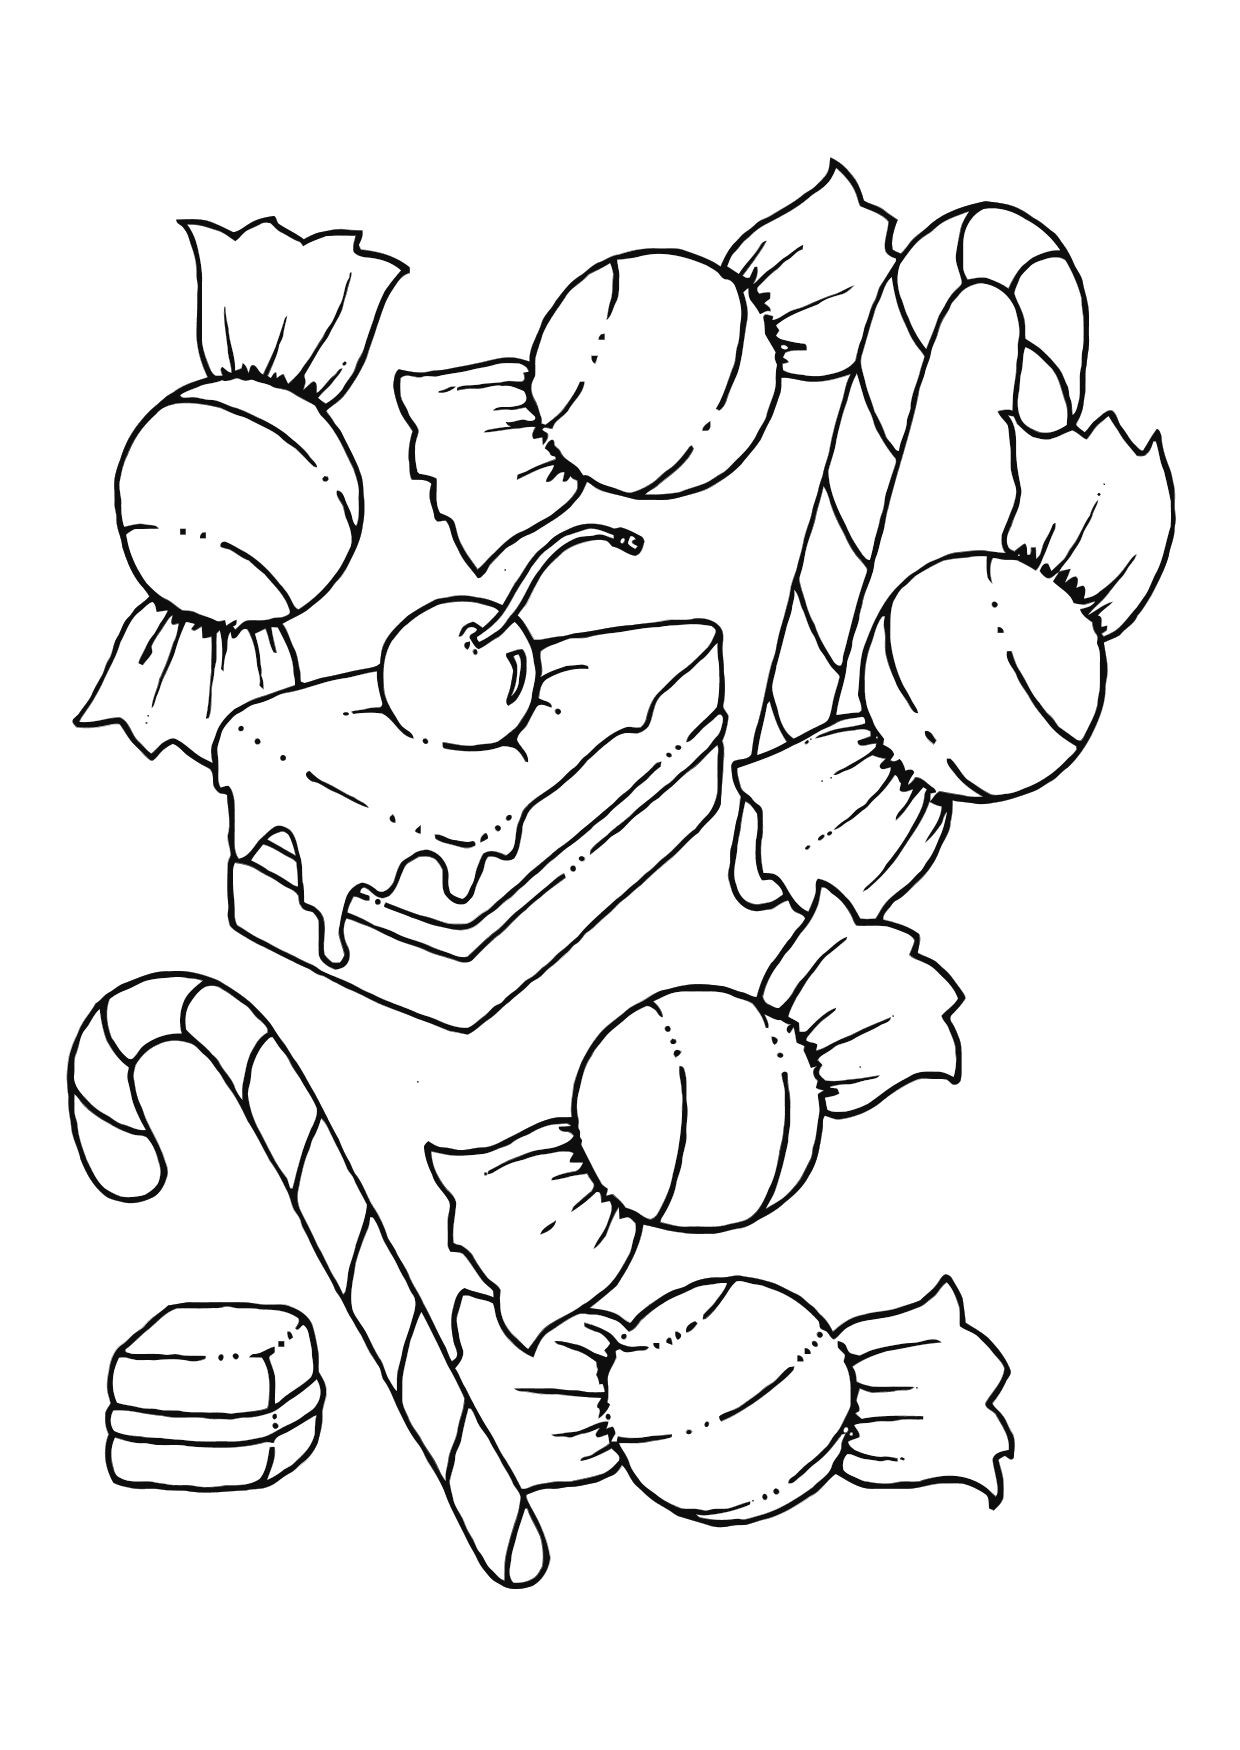 1240x1750 Candy Candy Lasso Anime Coloring Pages For Kids New Drawn Candy